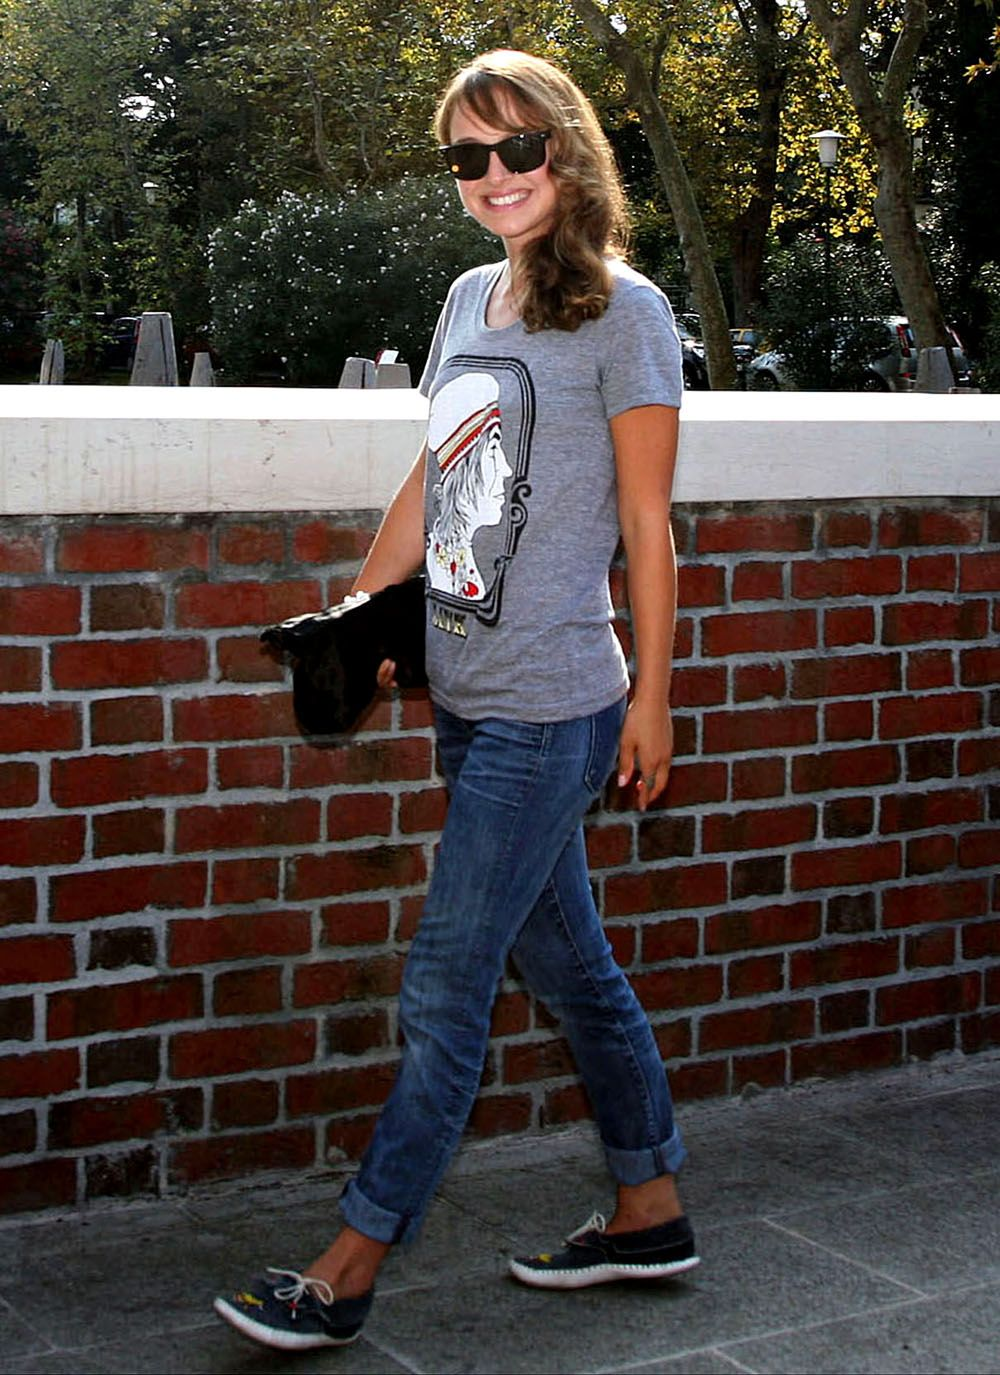 859f420869 Natalie Portman making jeans and a tshirt look adorable | Inspiring ...